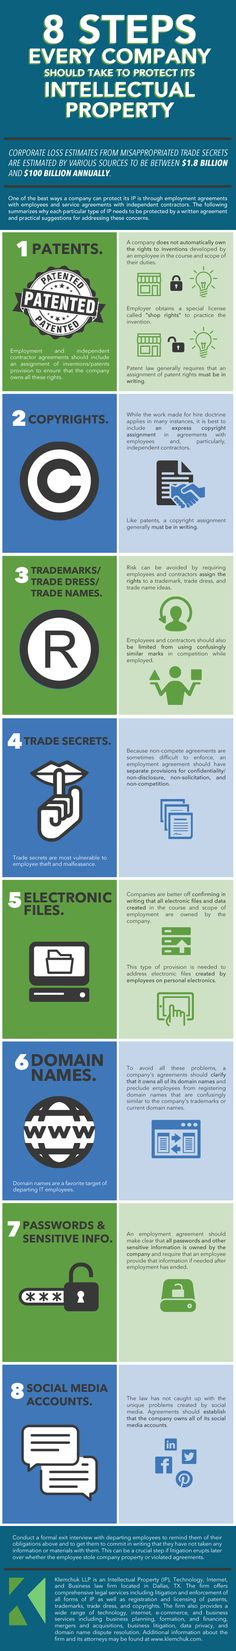 8 steps every company should take to protect its intellectual property. Infographic content authored by the intellectual property law firm of Klemchuk LLP.